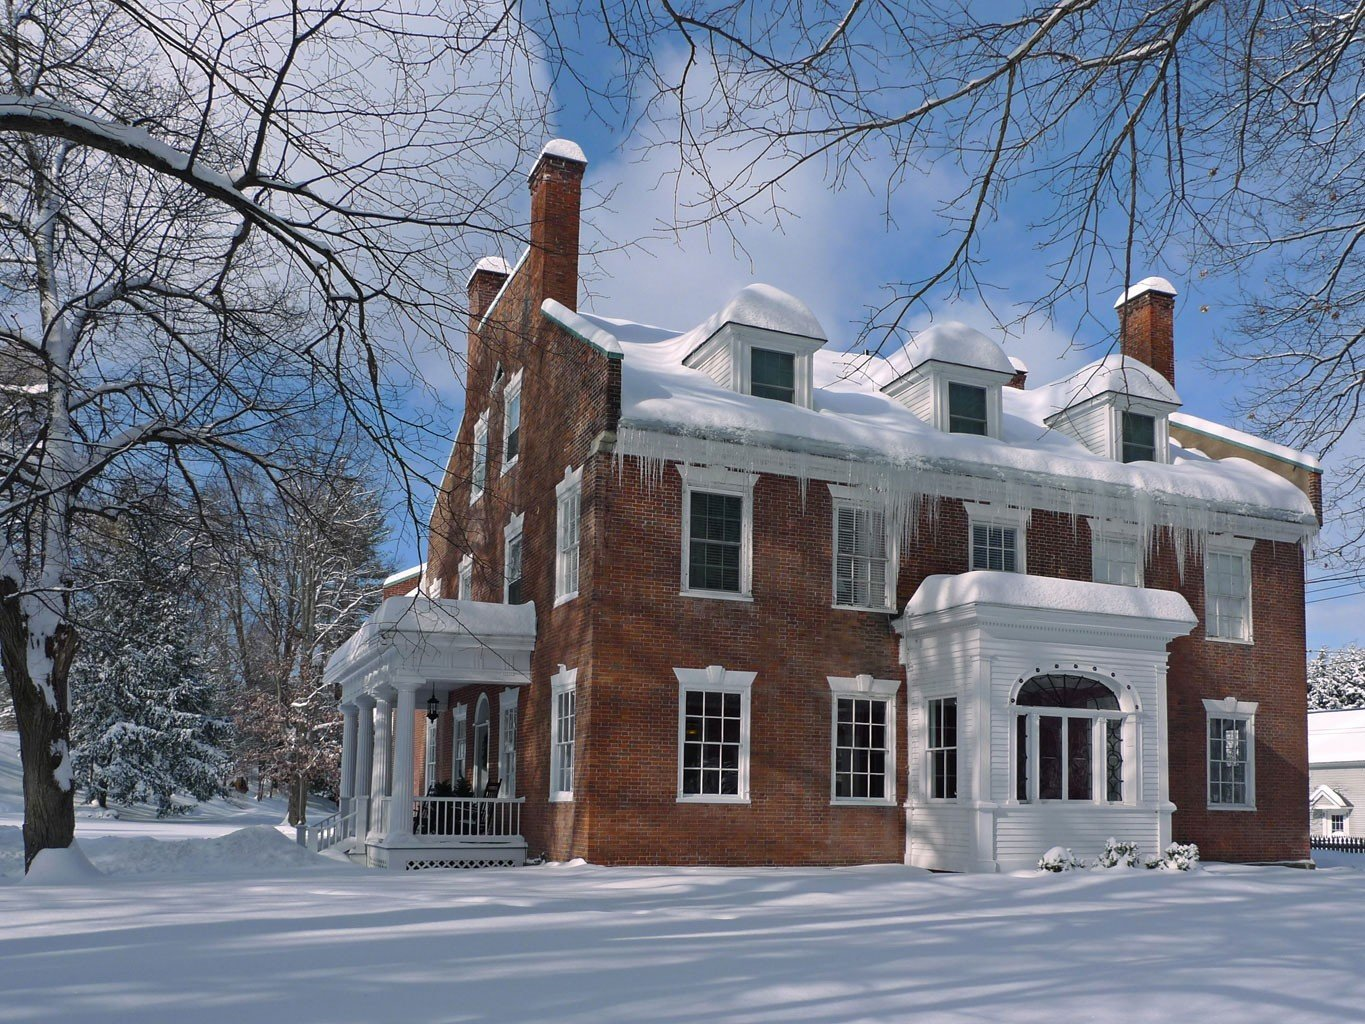 Trip Ideas tree outdoor snow building Winter house home weather neighbourhood season Architecture residential area estate roof facade outdoor structure mansion tall